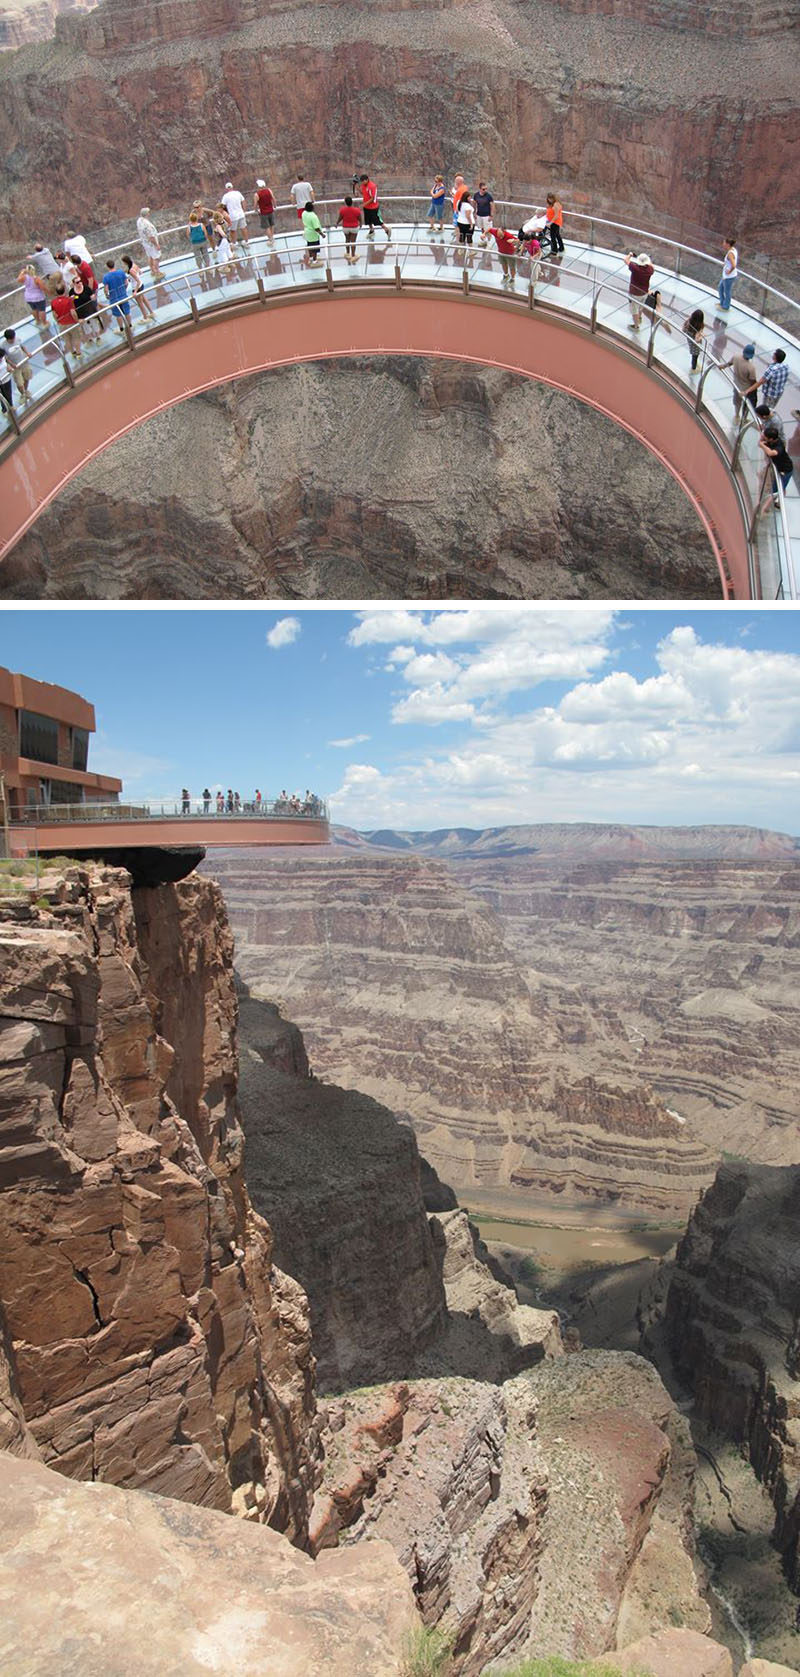 17 Tourist Activities That Would Be A Nightmare For People With A Fear Of Heights // The Grand Canyon Skywalk - Peach Springs, Arizona